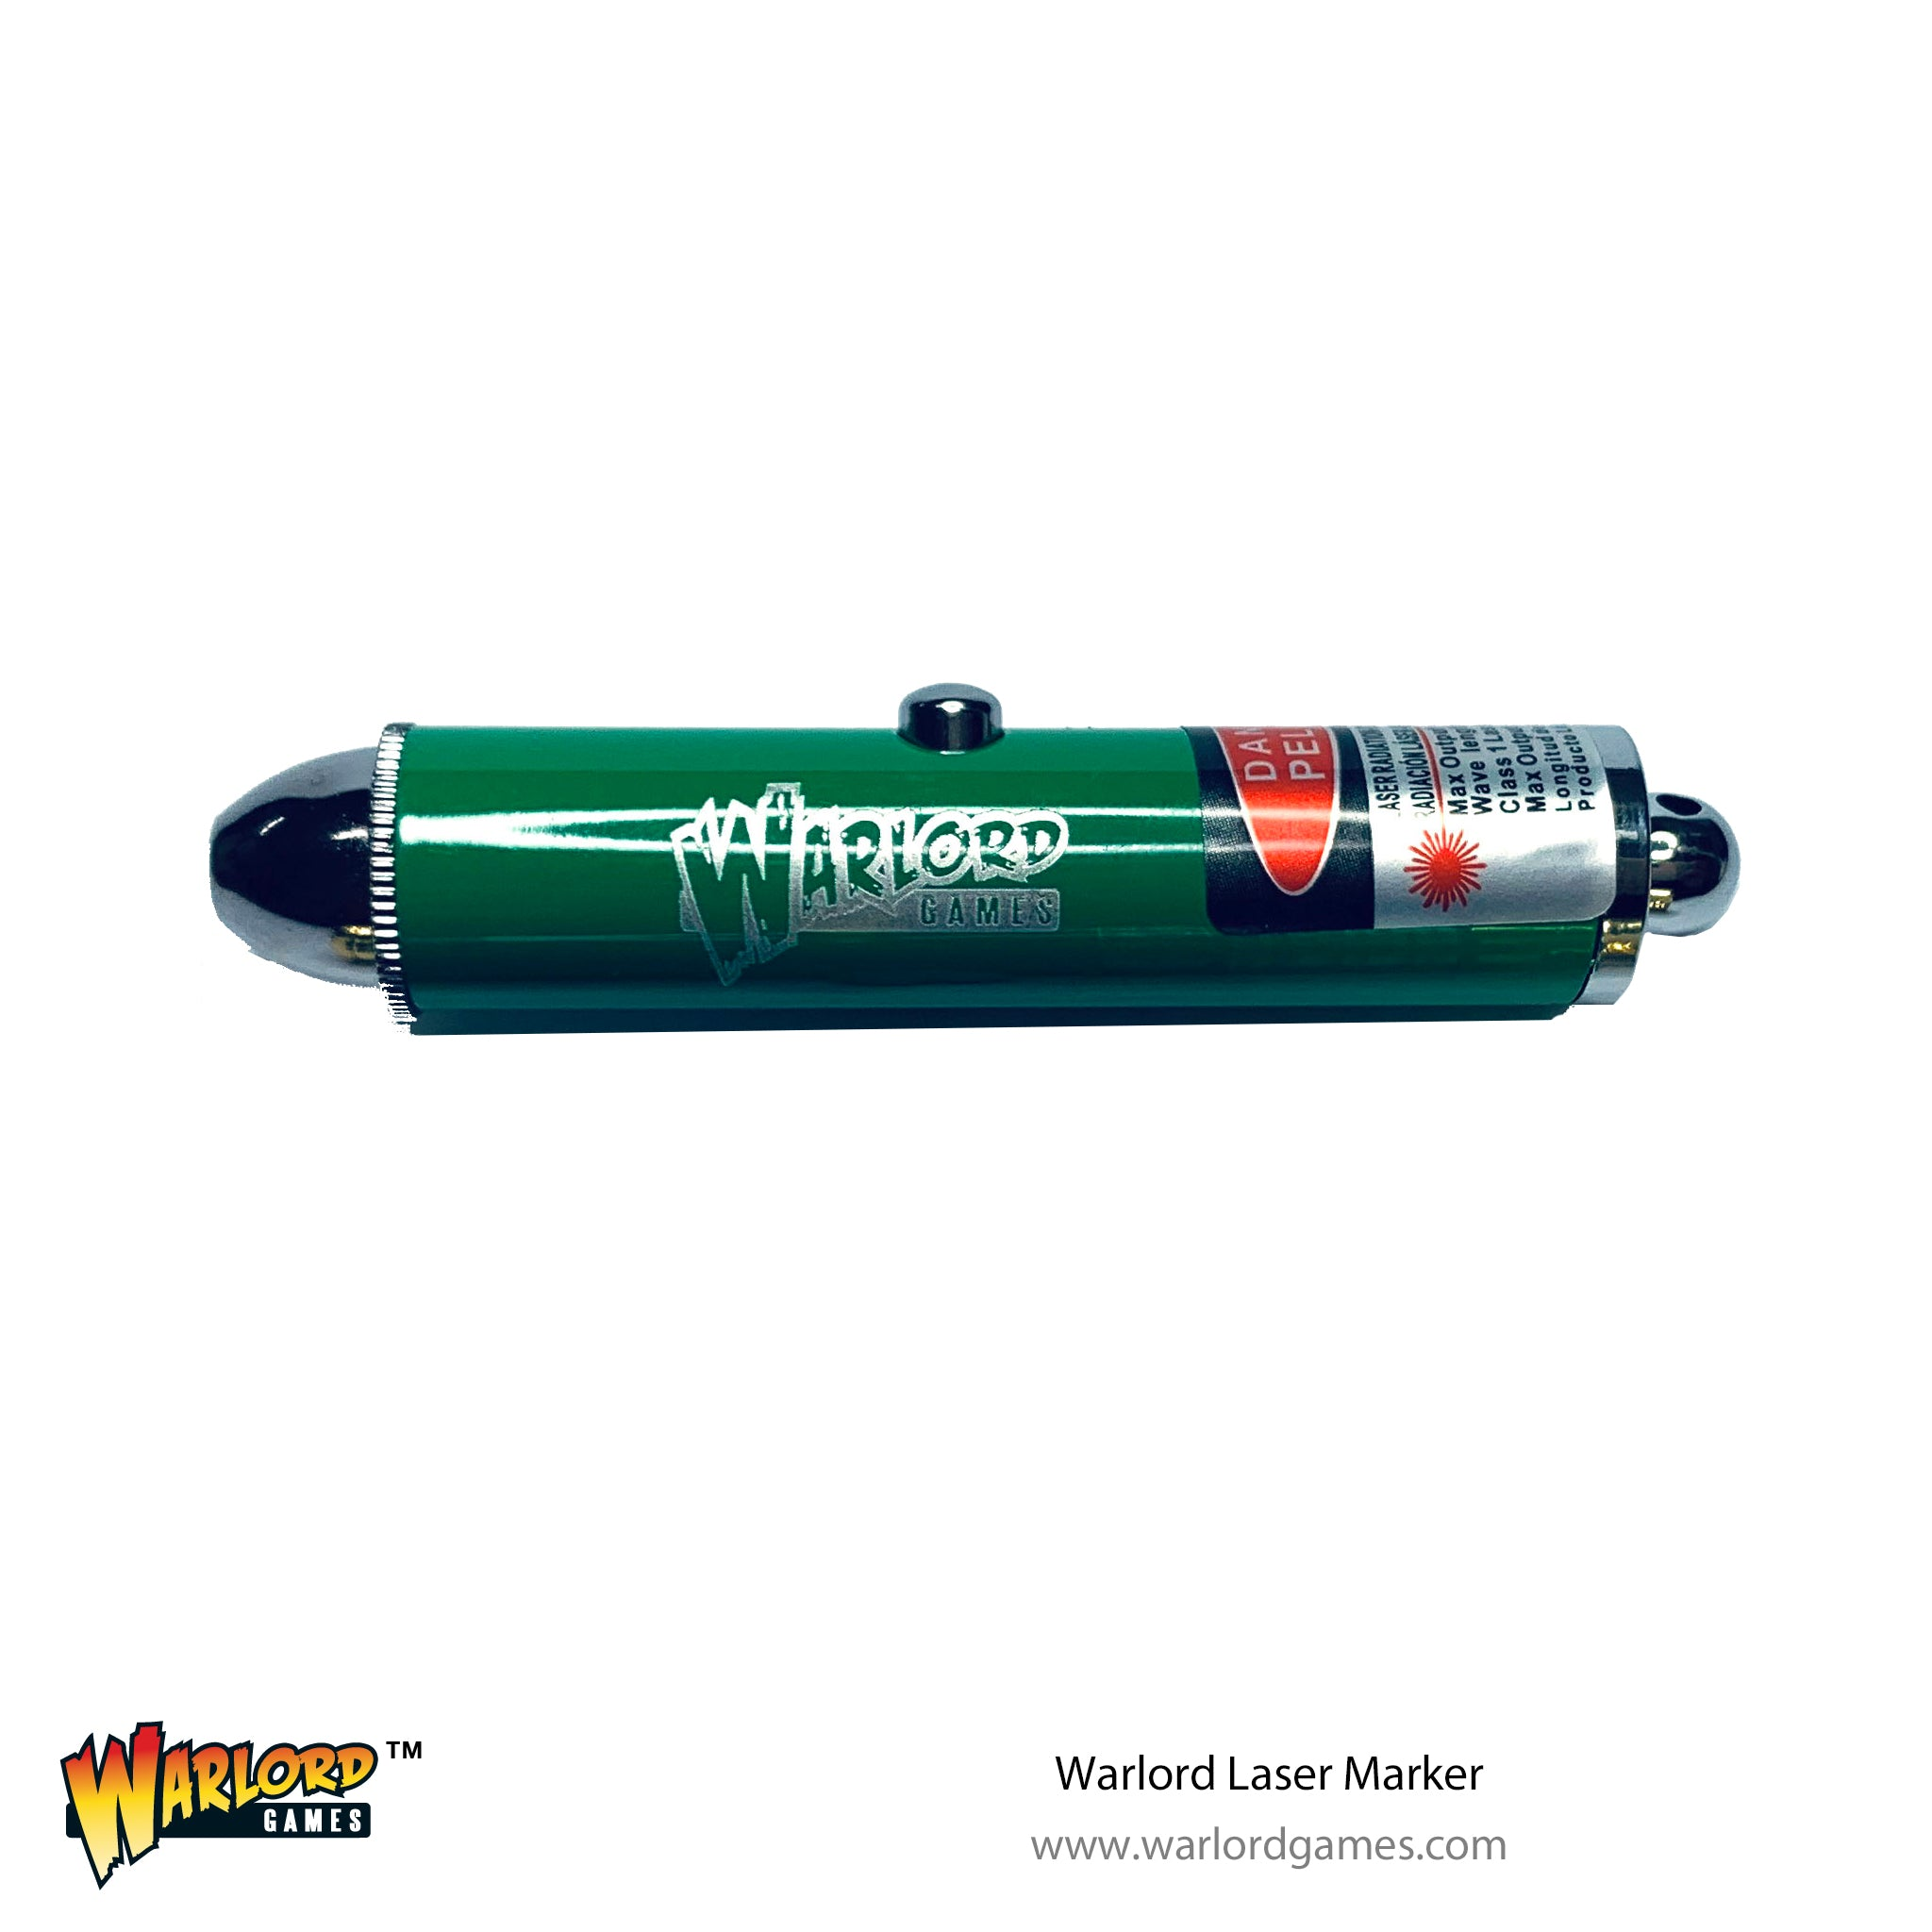 Warlord Laser Marker